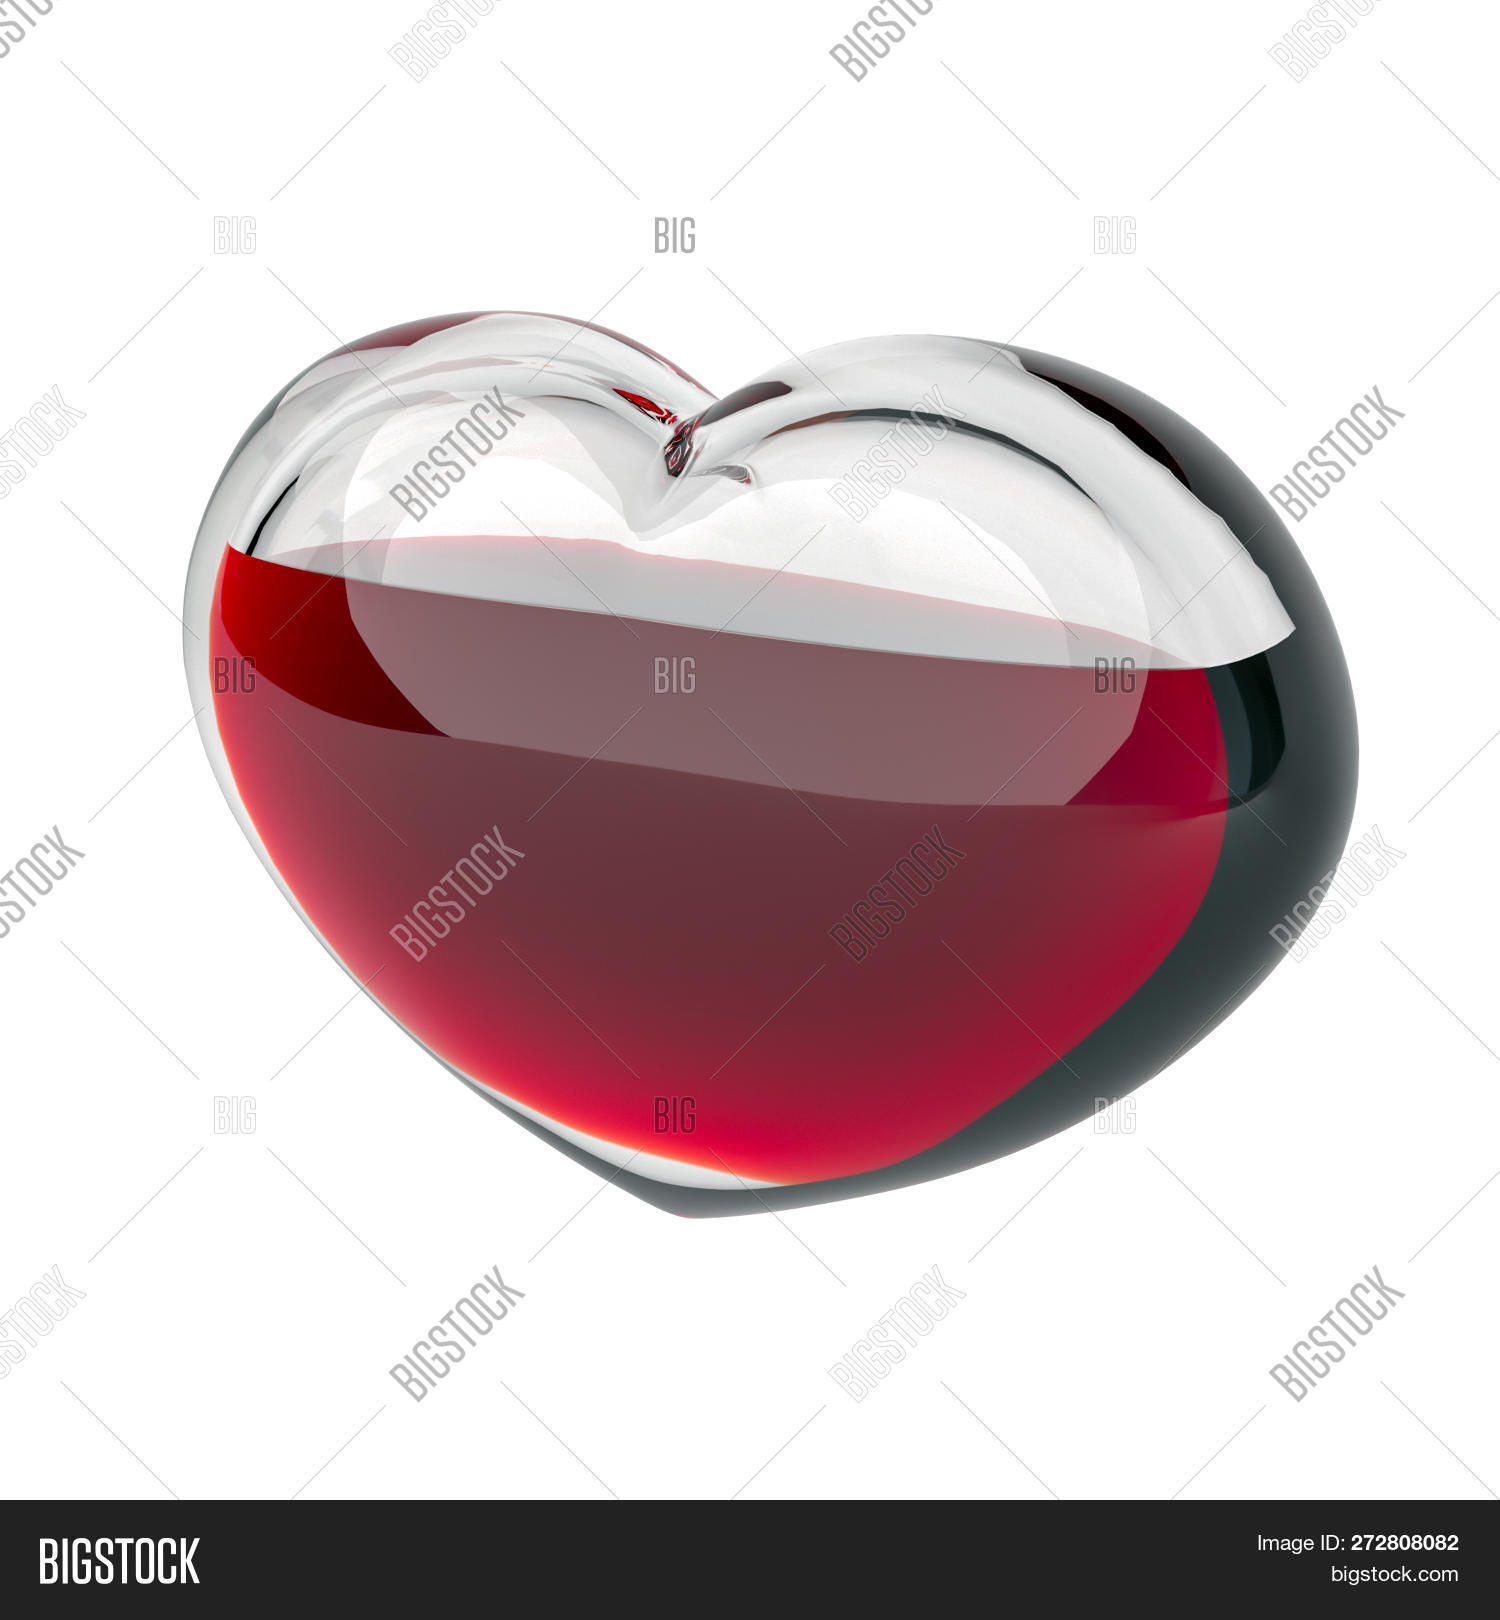 Glass Heart Filled Red Image & Photo (Free Trial) | Bigstock